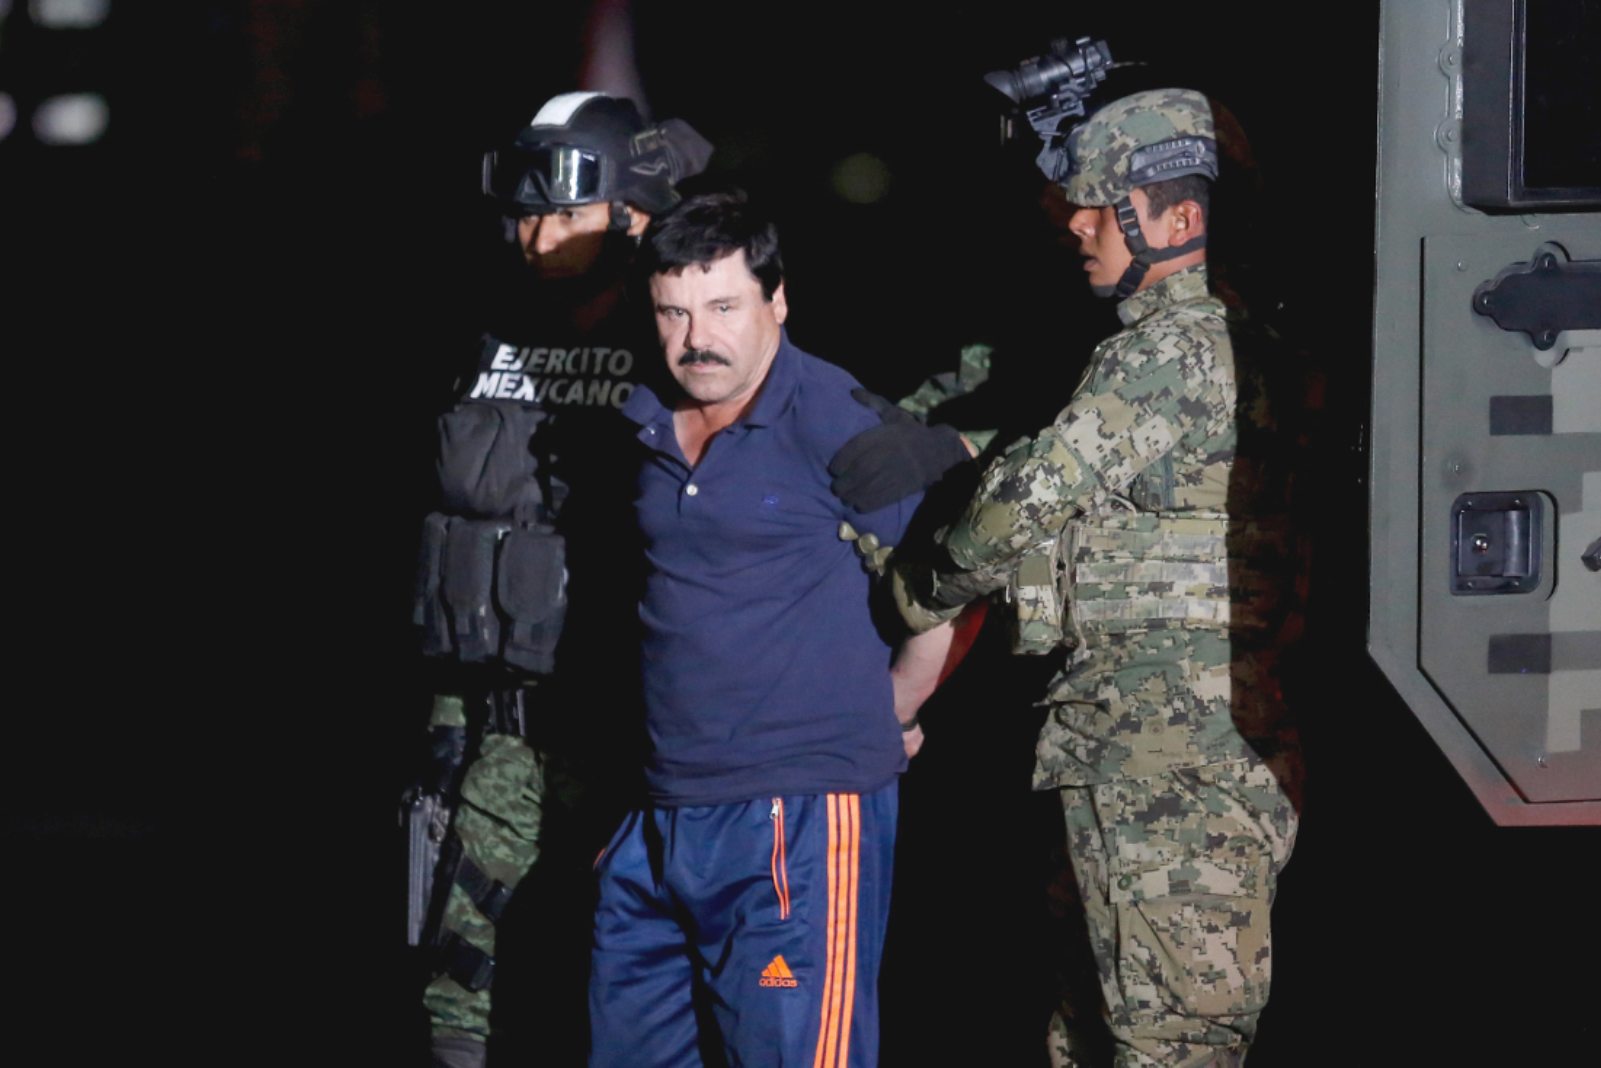 Trial of El Chapo